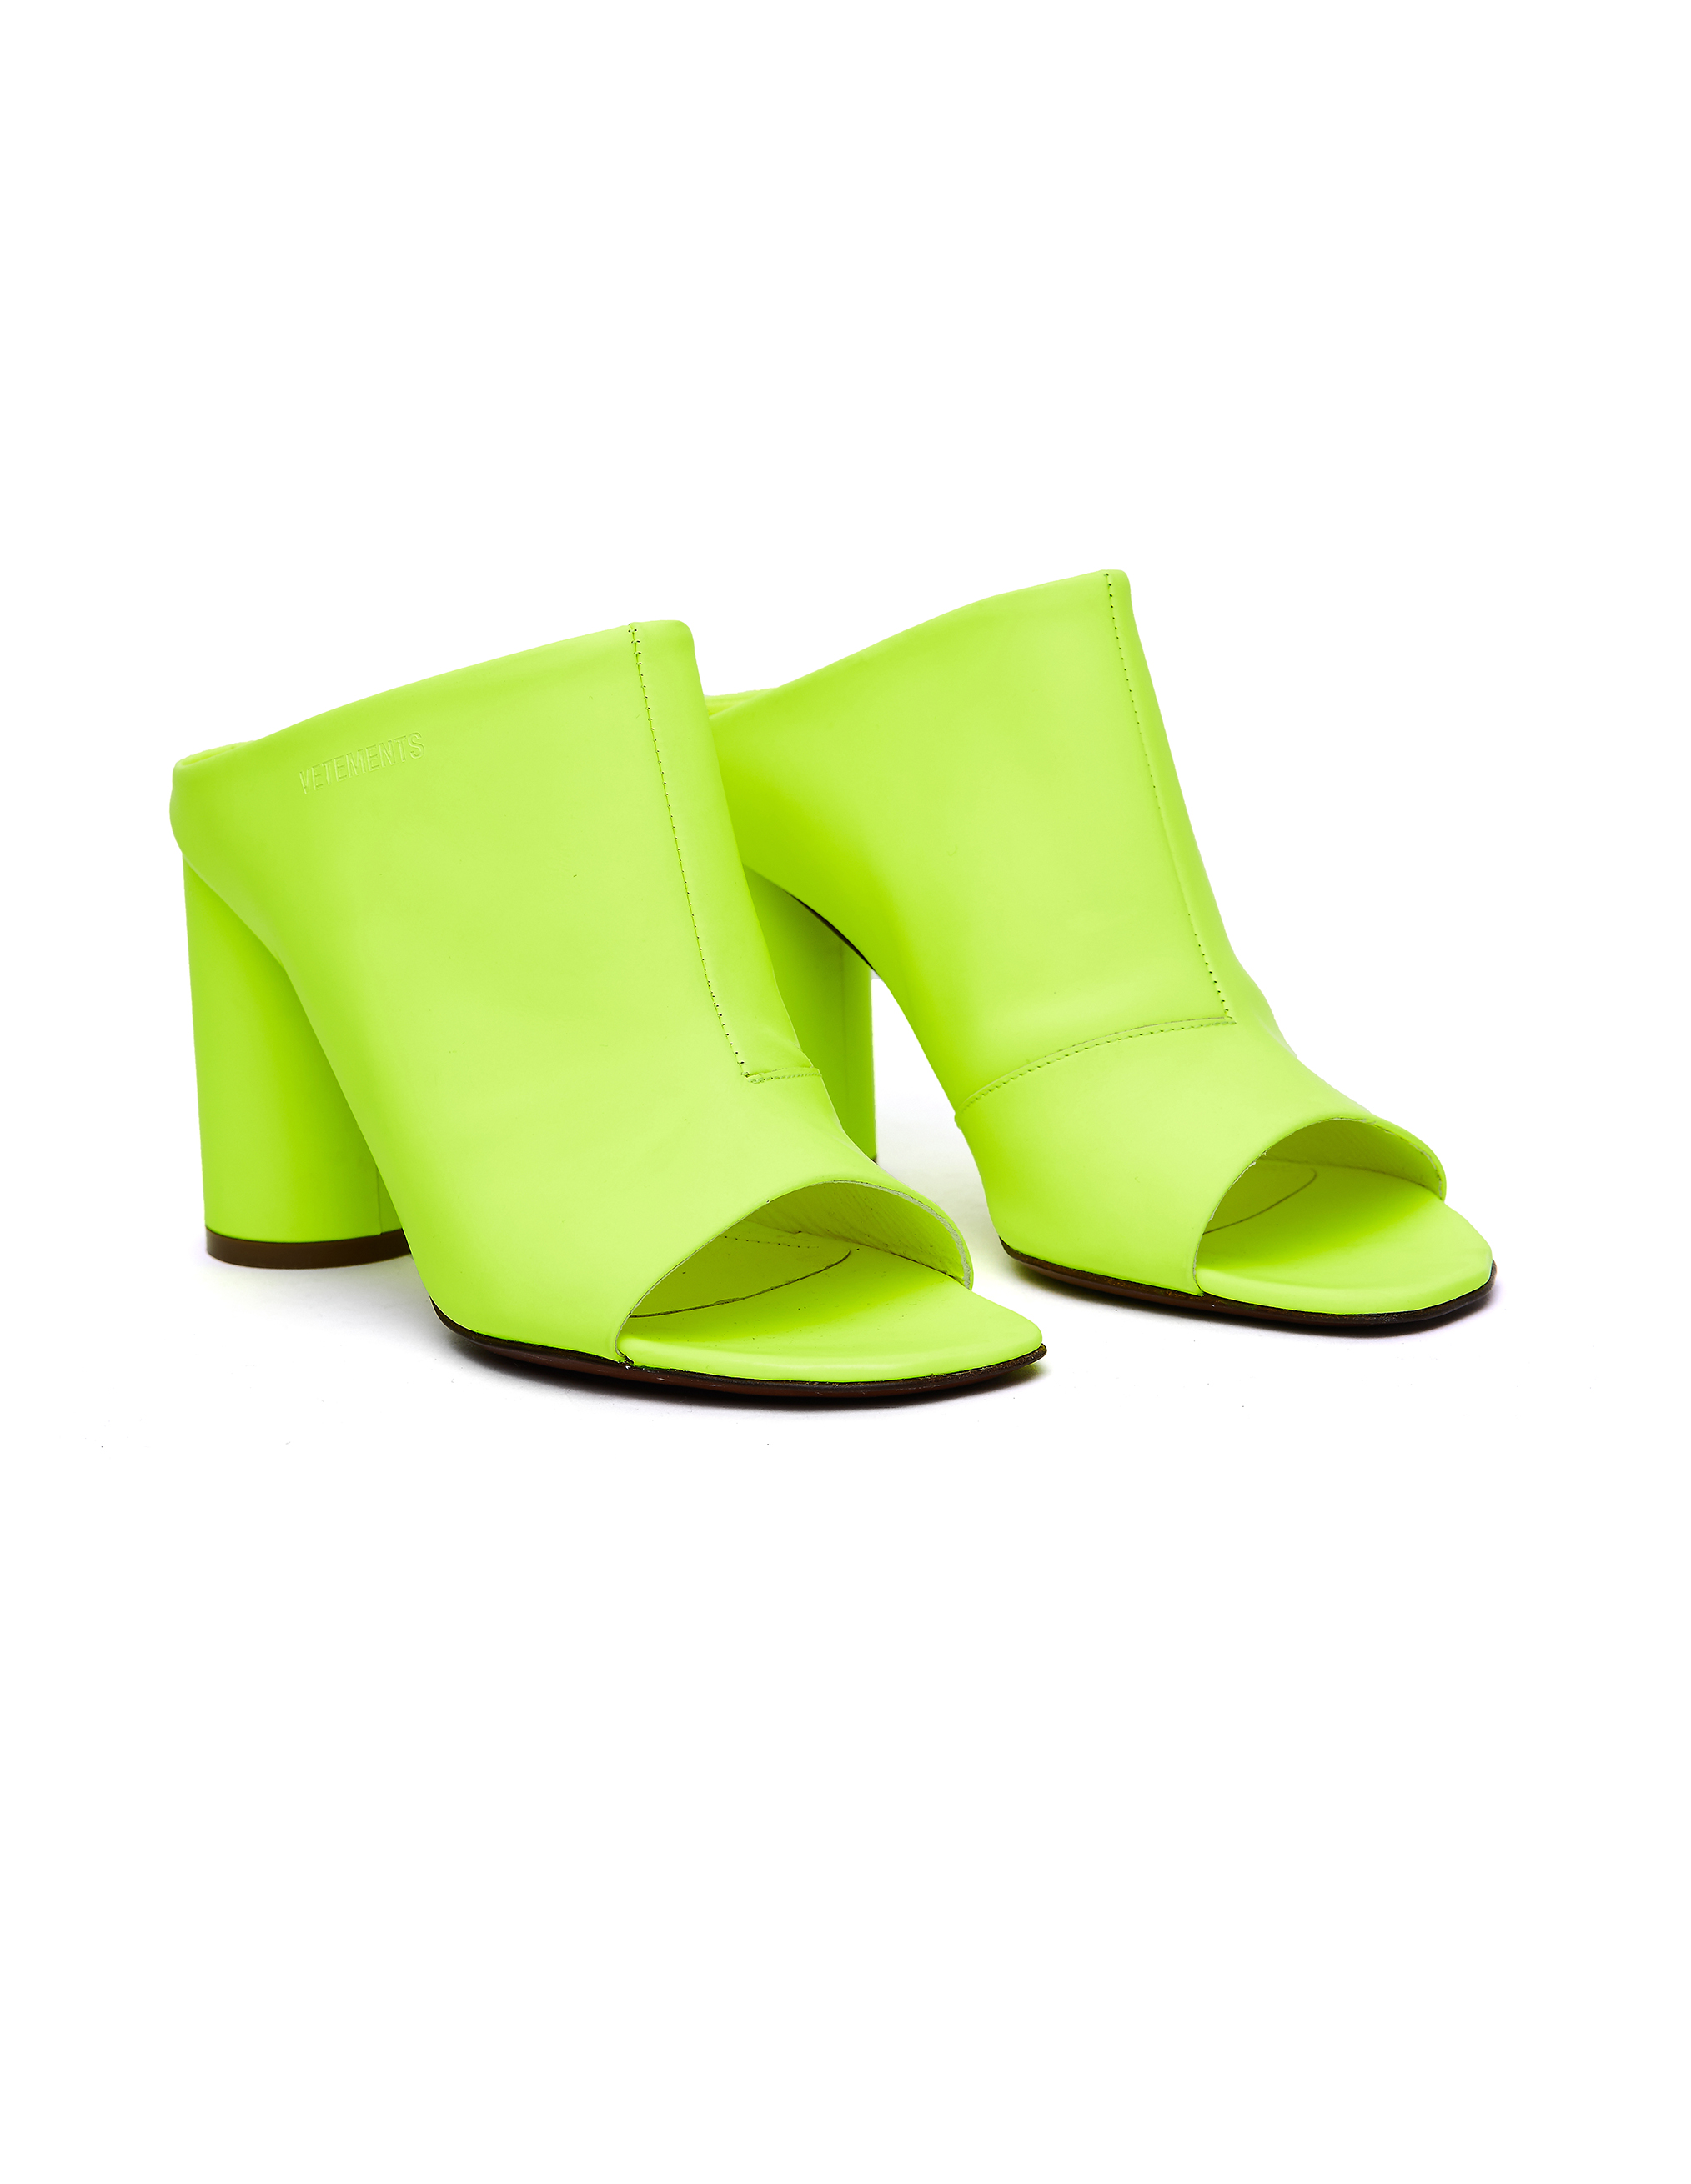 Vetements Neon Yellow Leather Shoes